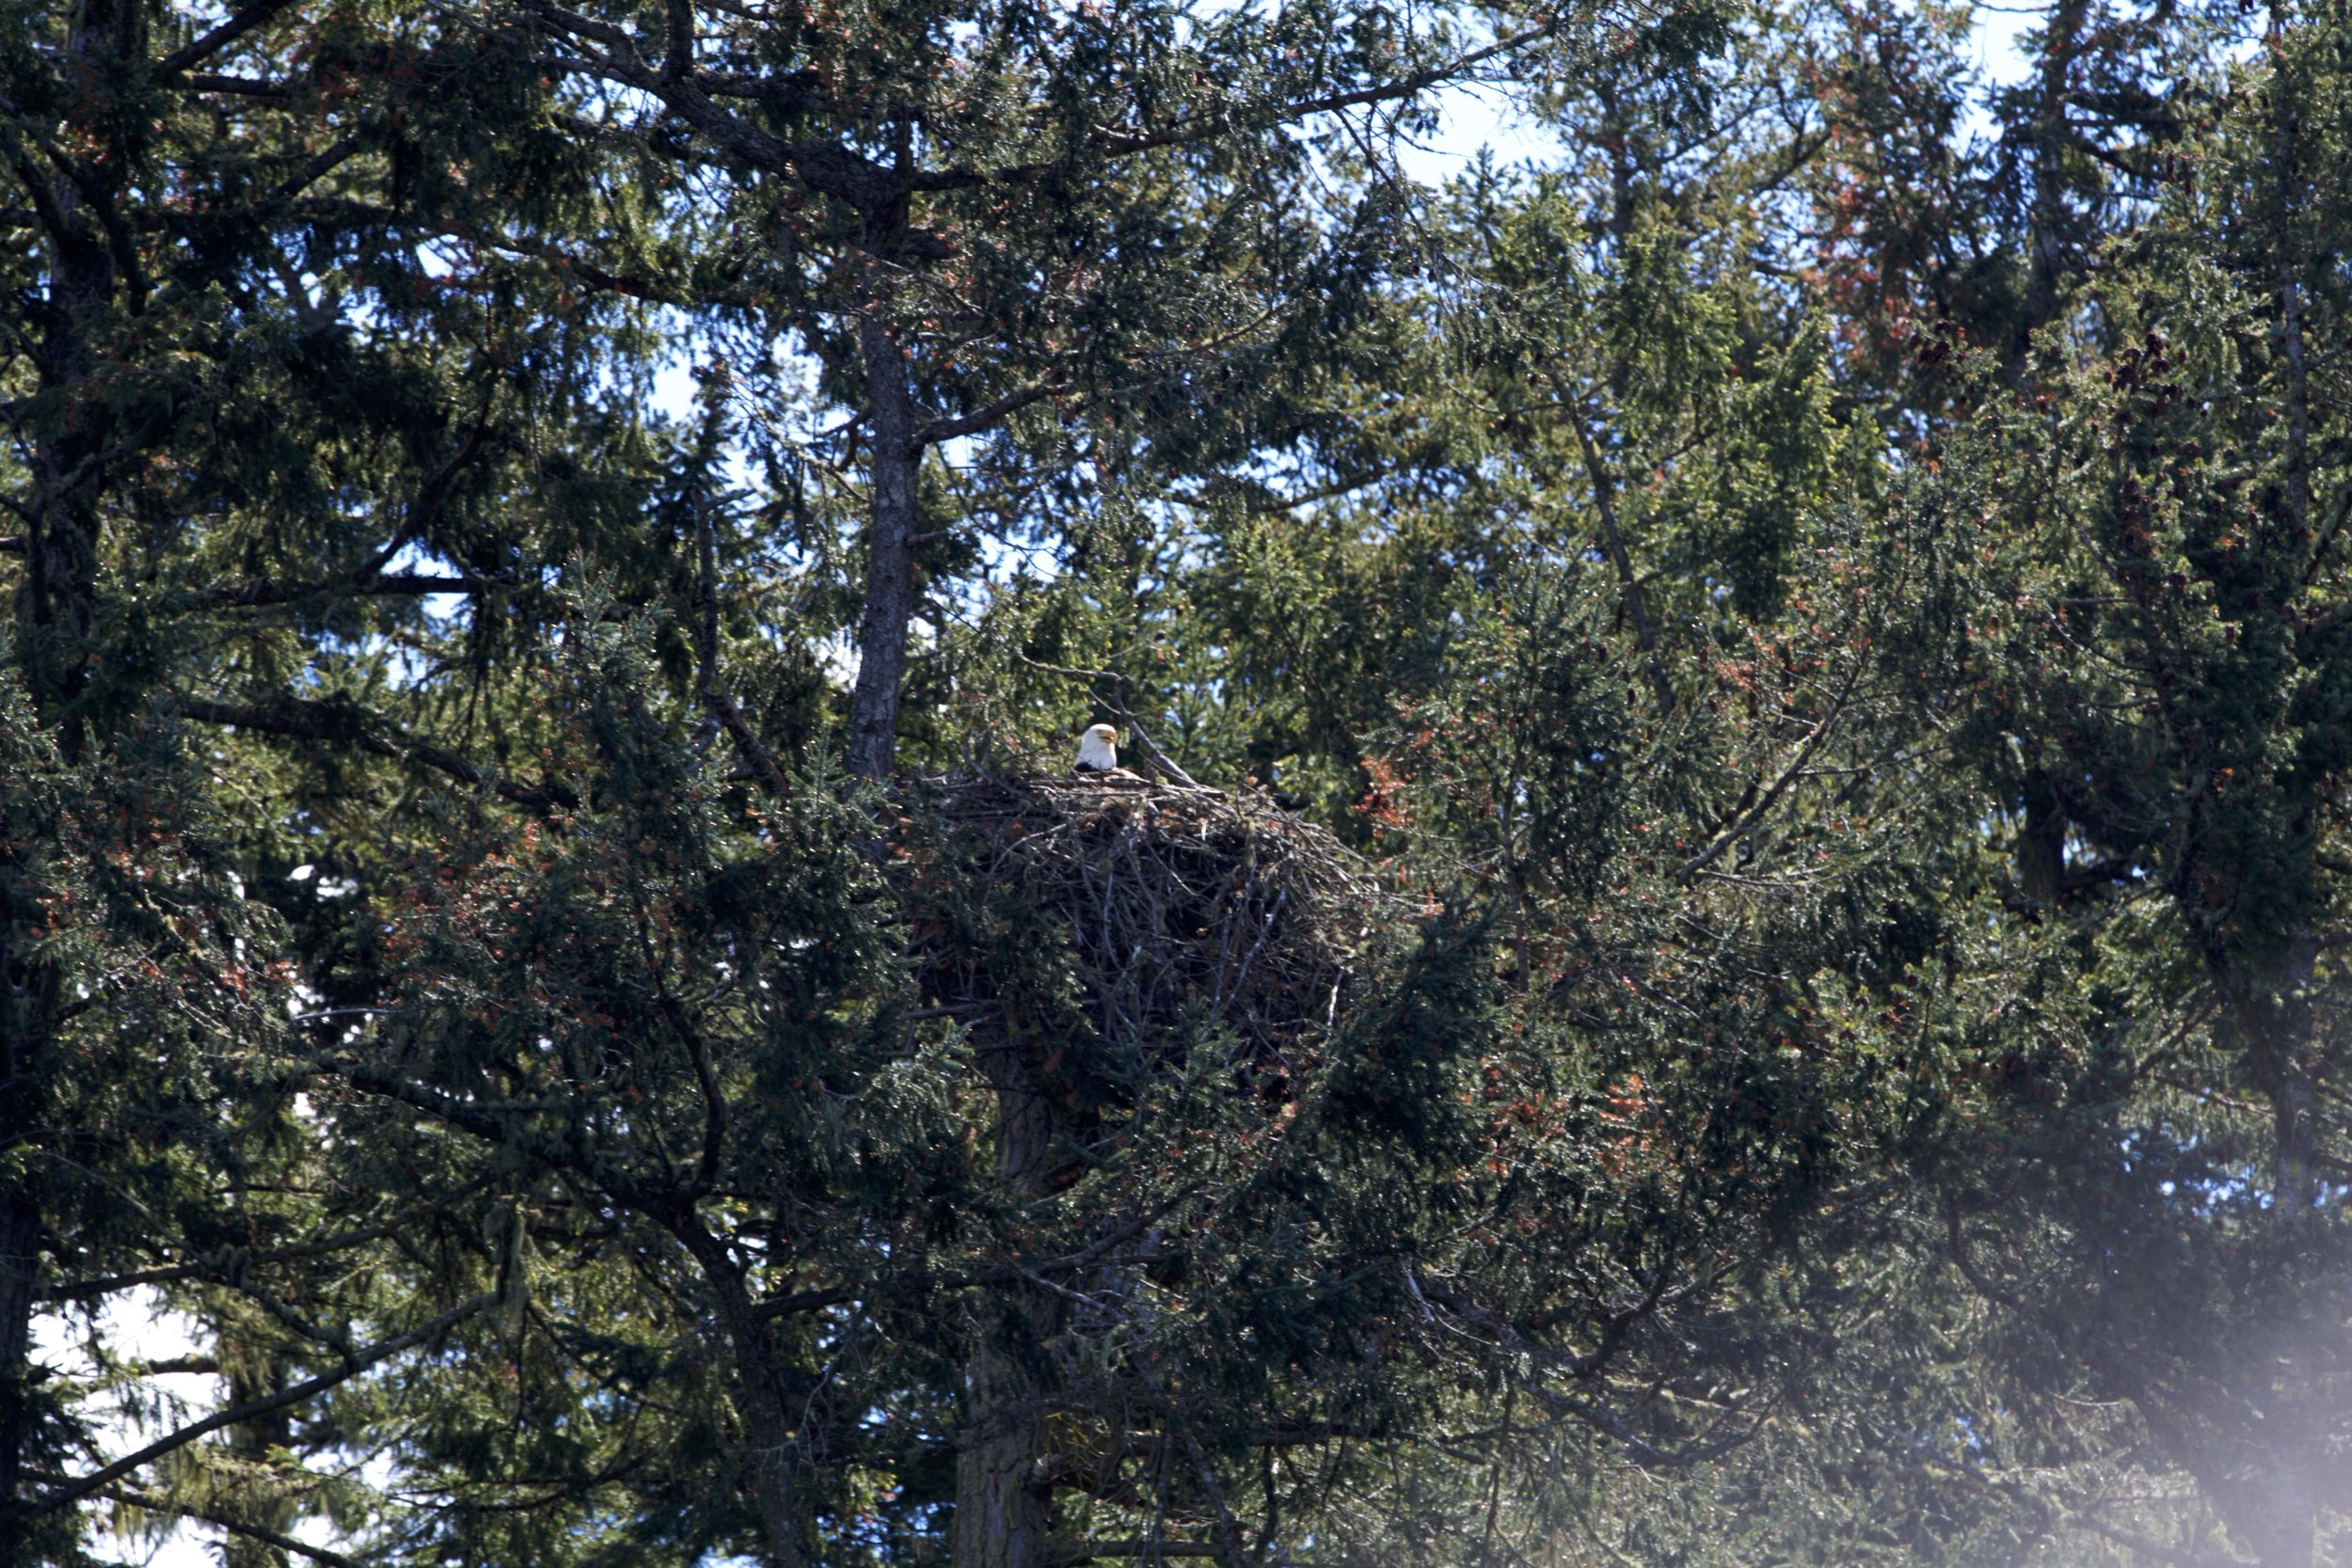 A bald eagle in its nest on a nearby island. Photo by Sean Galvin.